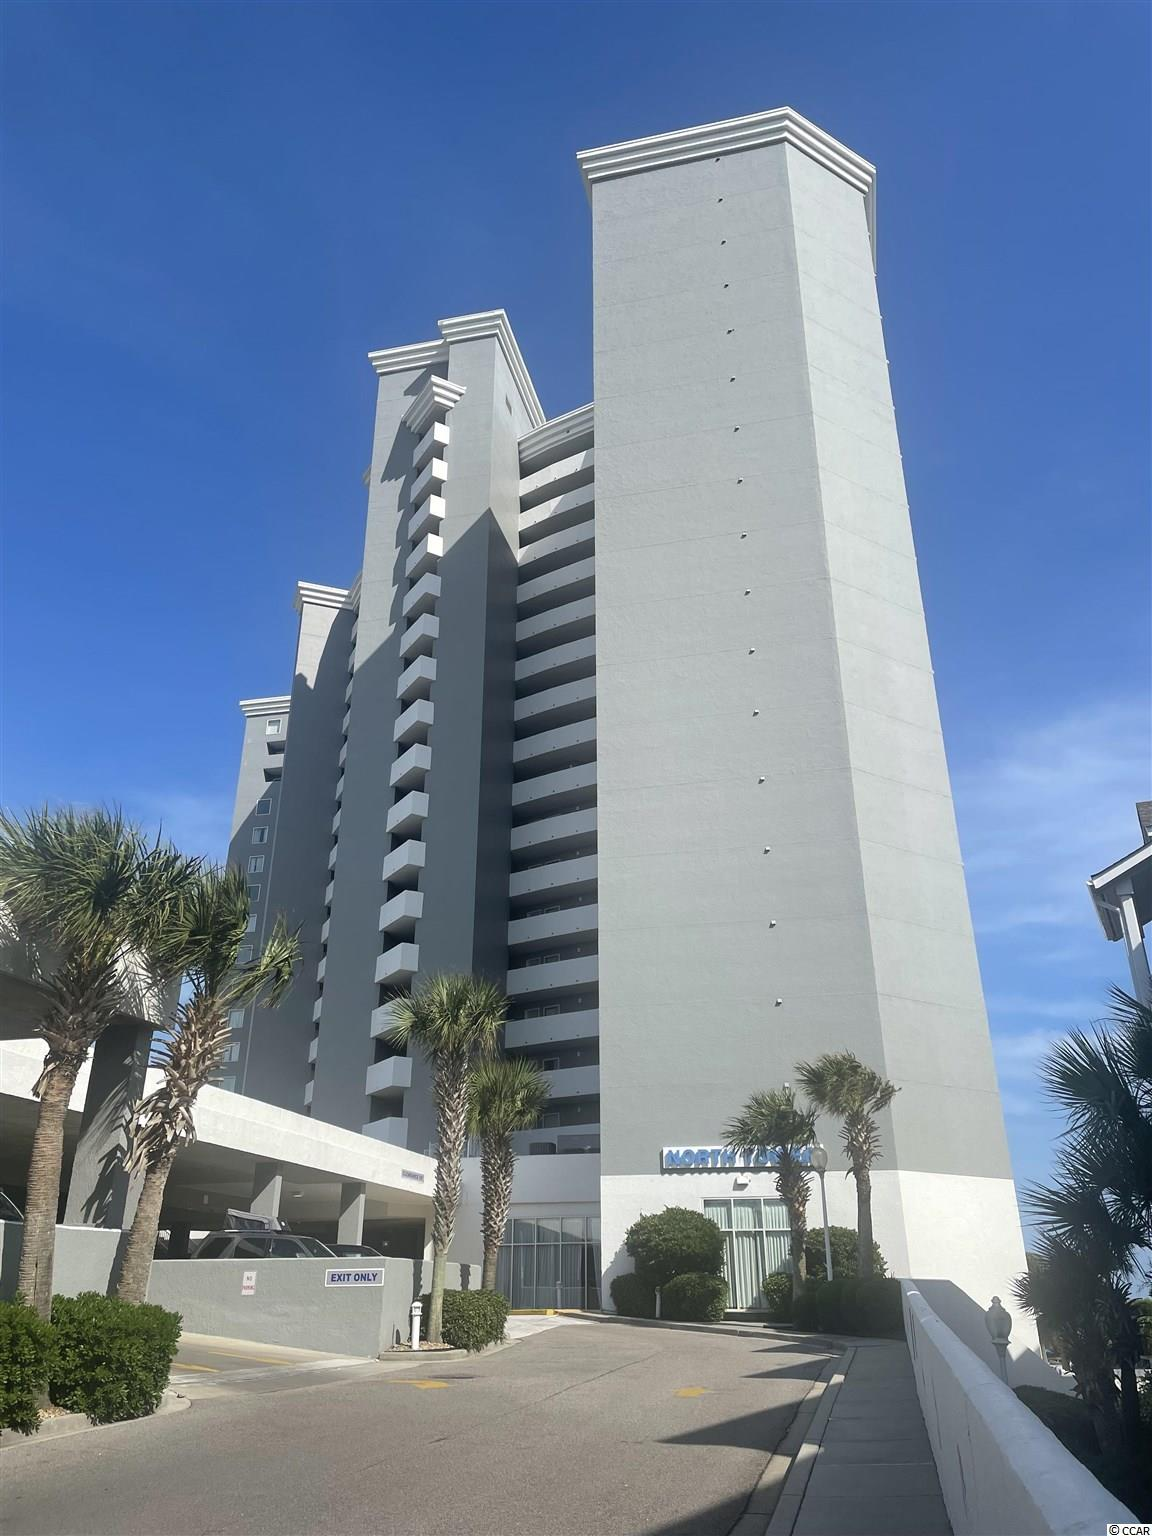 Perfect Location! OCEANFRONT 1 bedroom, 1 bath condo in highly desirable Seawatch Tower in the heart of Myrtle Beach. This furnished condo offers an open floor plan with large living area, updated and fully stocked kitchen, breakfast bar, dining area and large bedroom. Step out onto the balcony to relax and enjoy the unlimited ocean views. Seawatch has it all!  Amenities include private beach access, indoor and outdoor pools and lazy river, fitness center, and is located near unlimited restuarants, Tanger Outlet shopping,  and nearby entertainment. This is a perfect investment opportunity or second home....schedule your appointment today to see this gem!